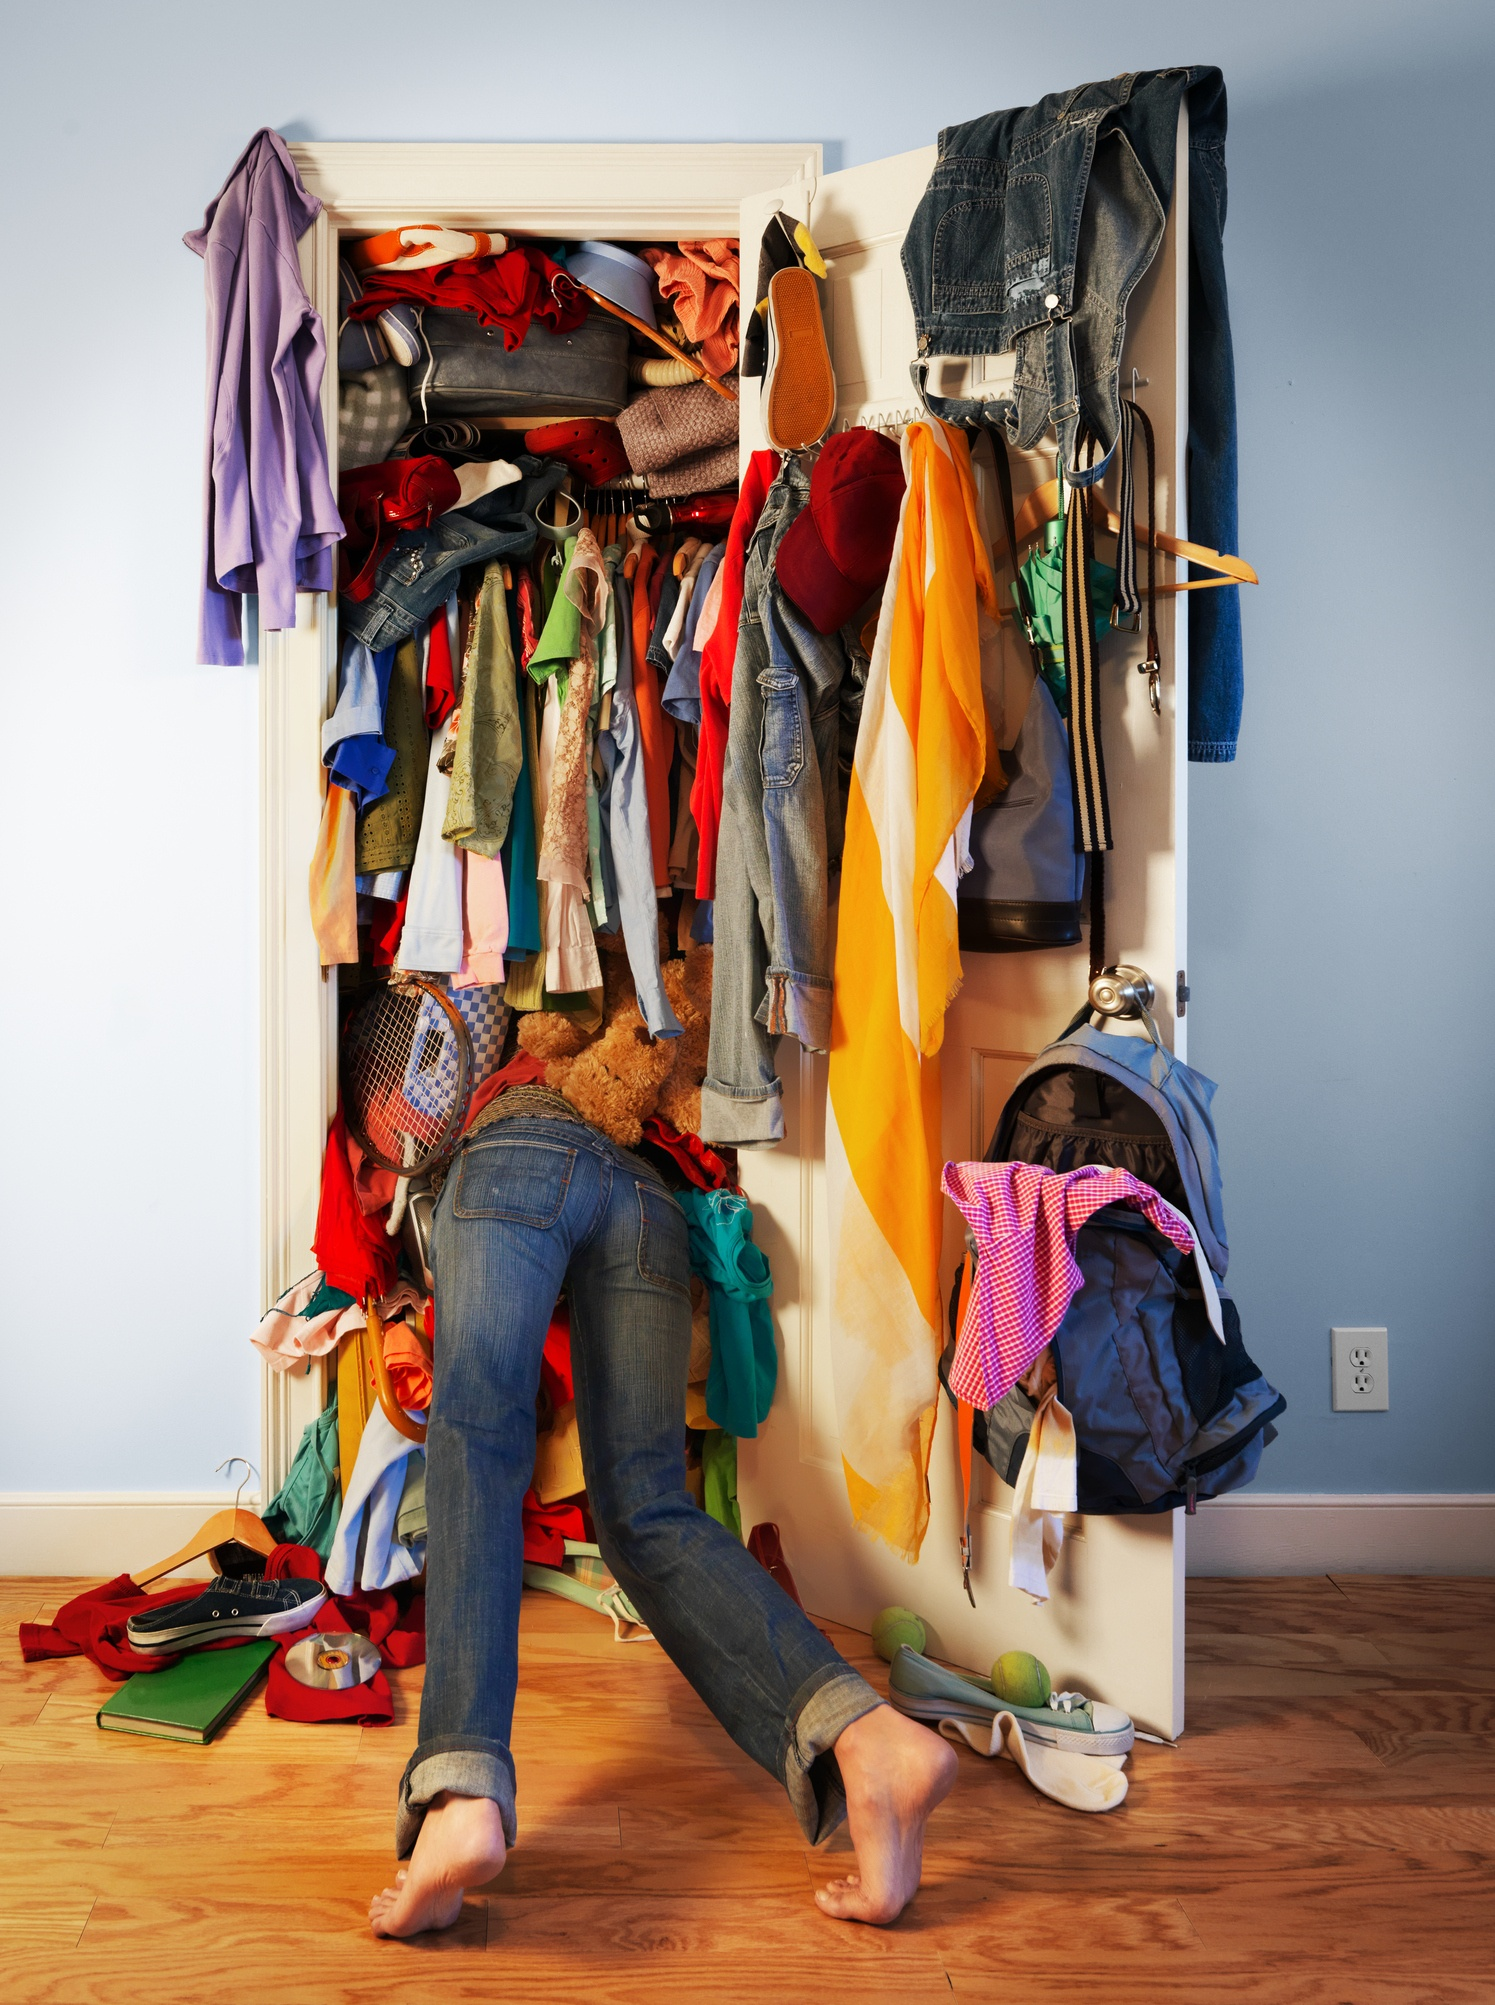 You're not a hoarder just because you have a mess